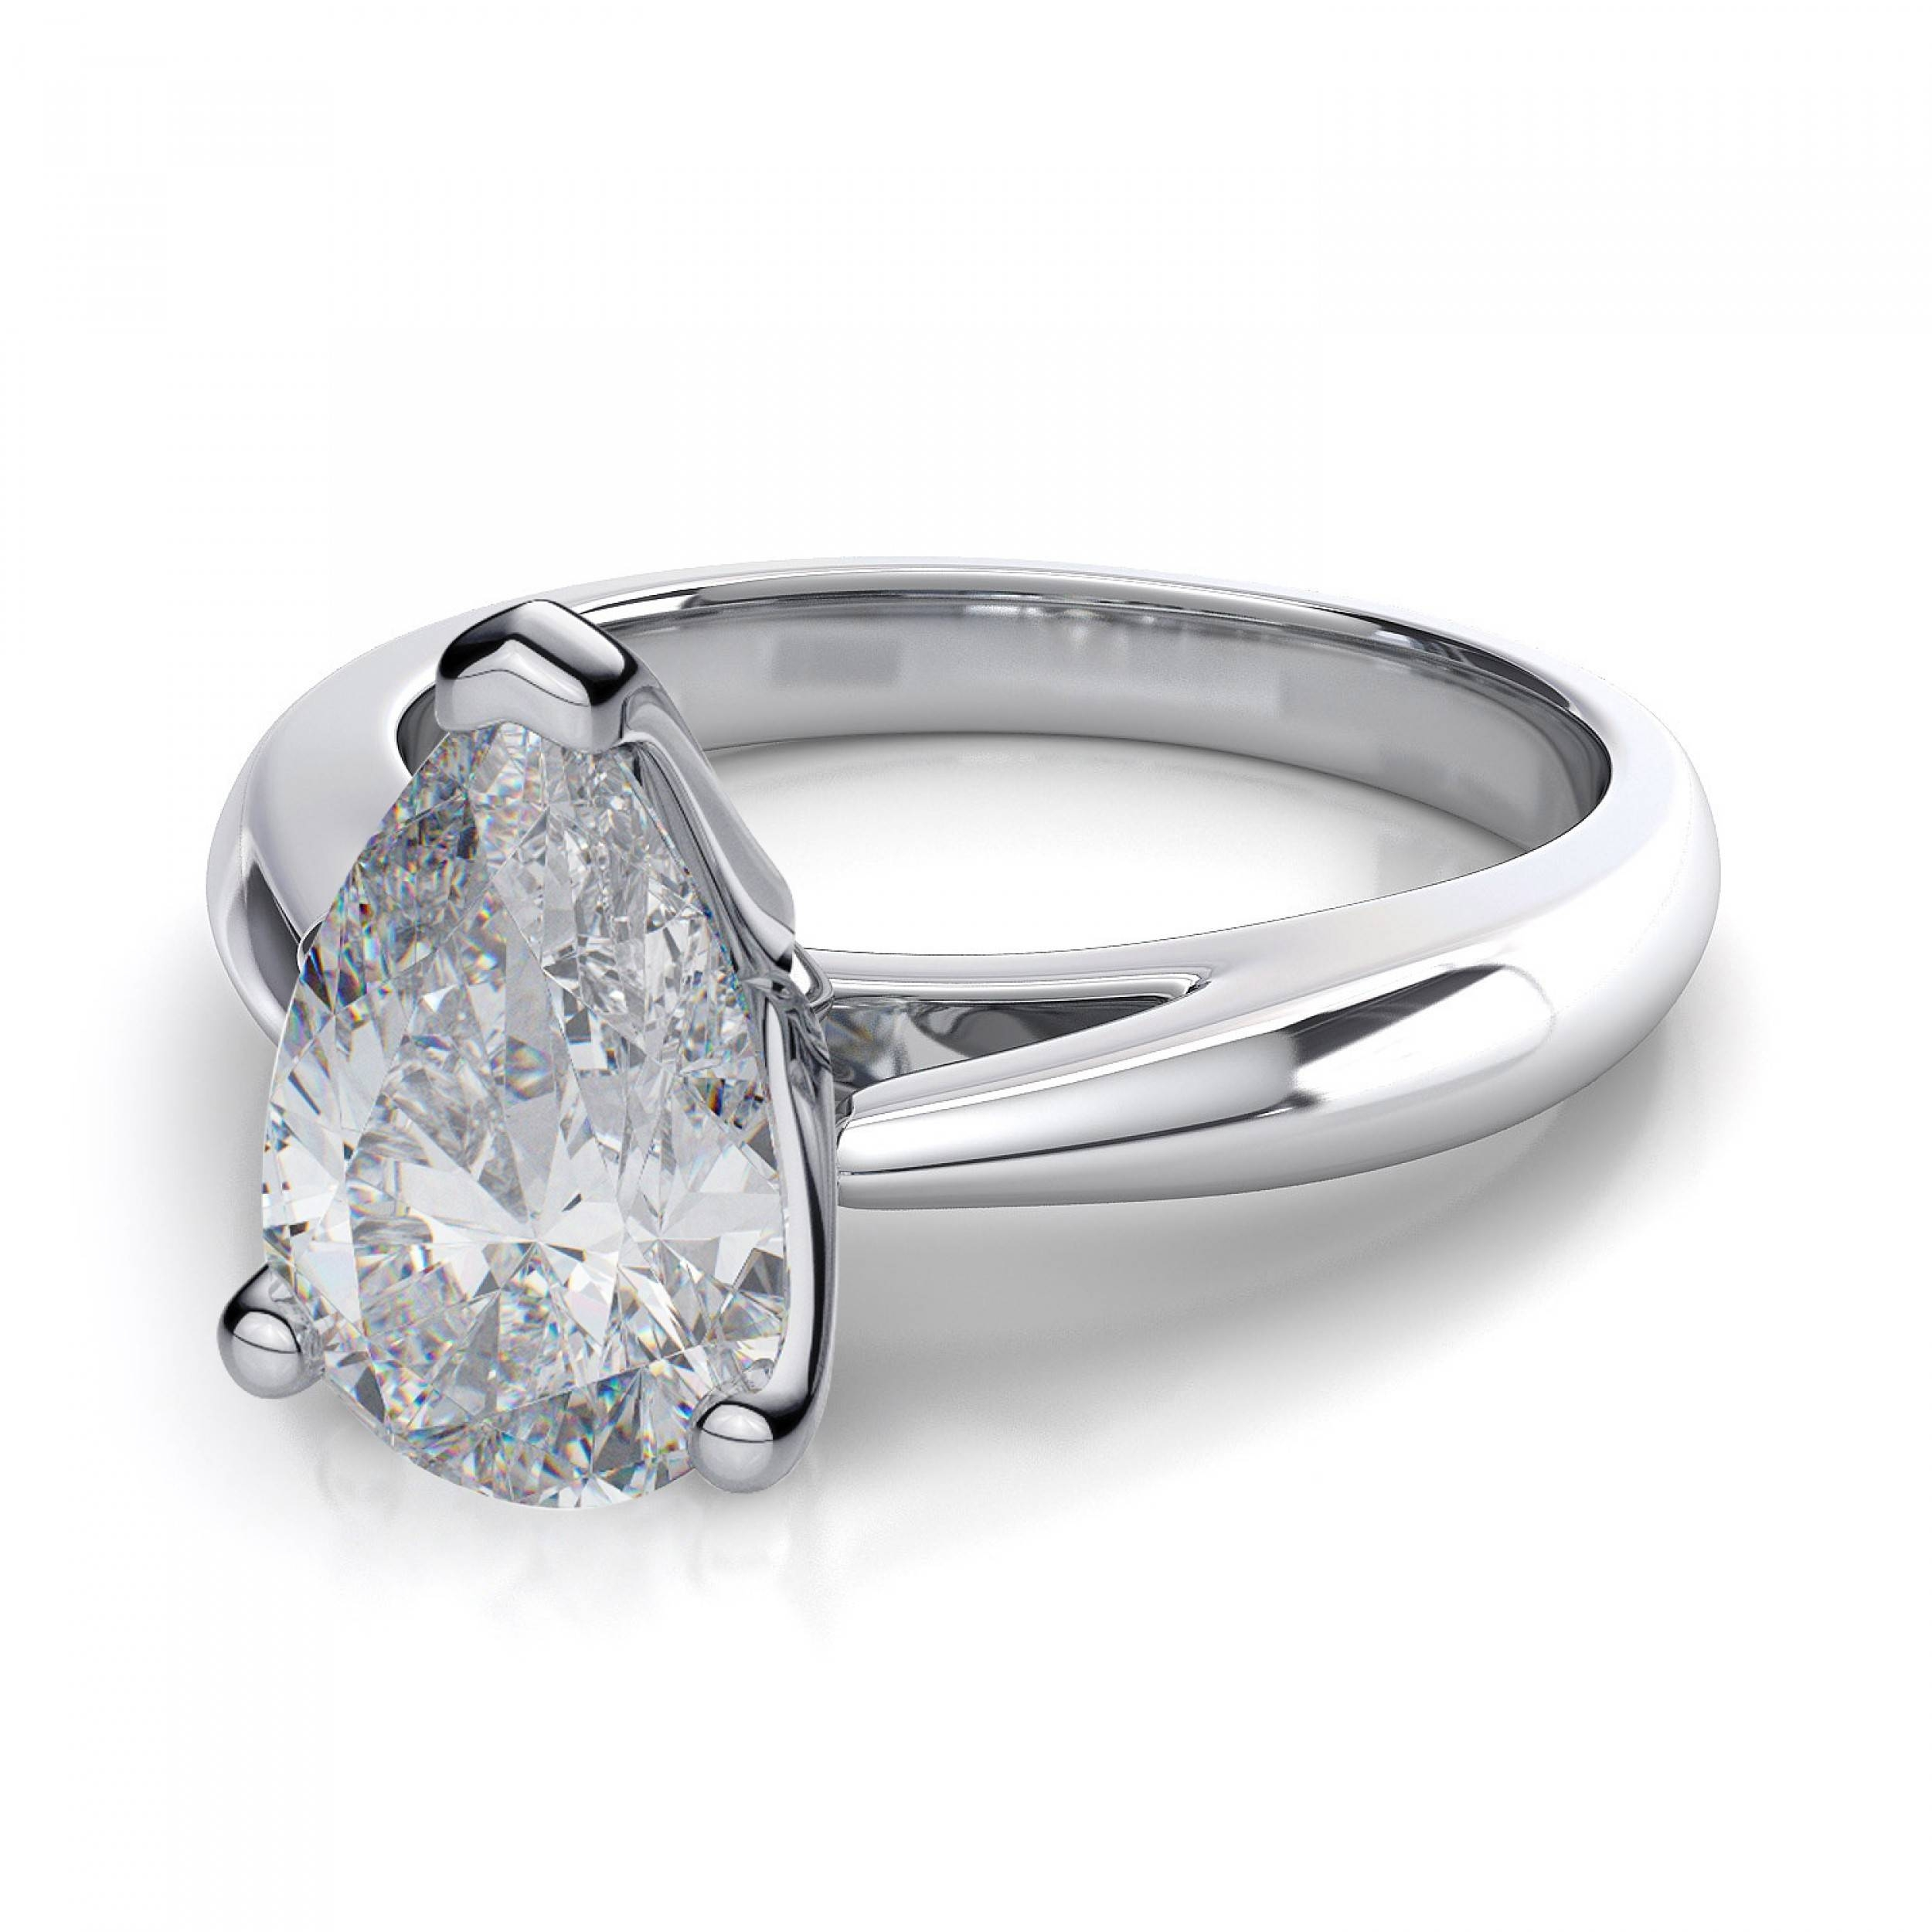 Knife Edge Pear Shape Diamond Solitaire Ring – Platinum Regarding Pear Shaped Diamond Engagement Ring Settings (View 12 of 15)